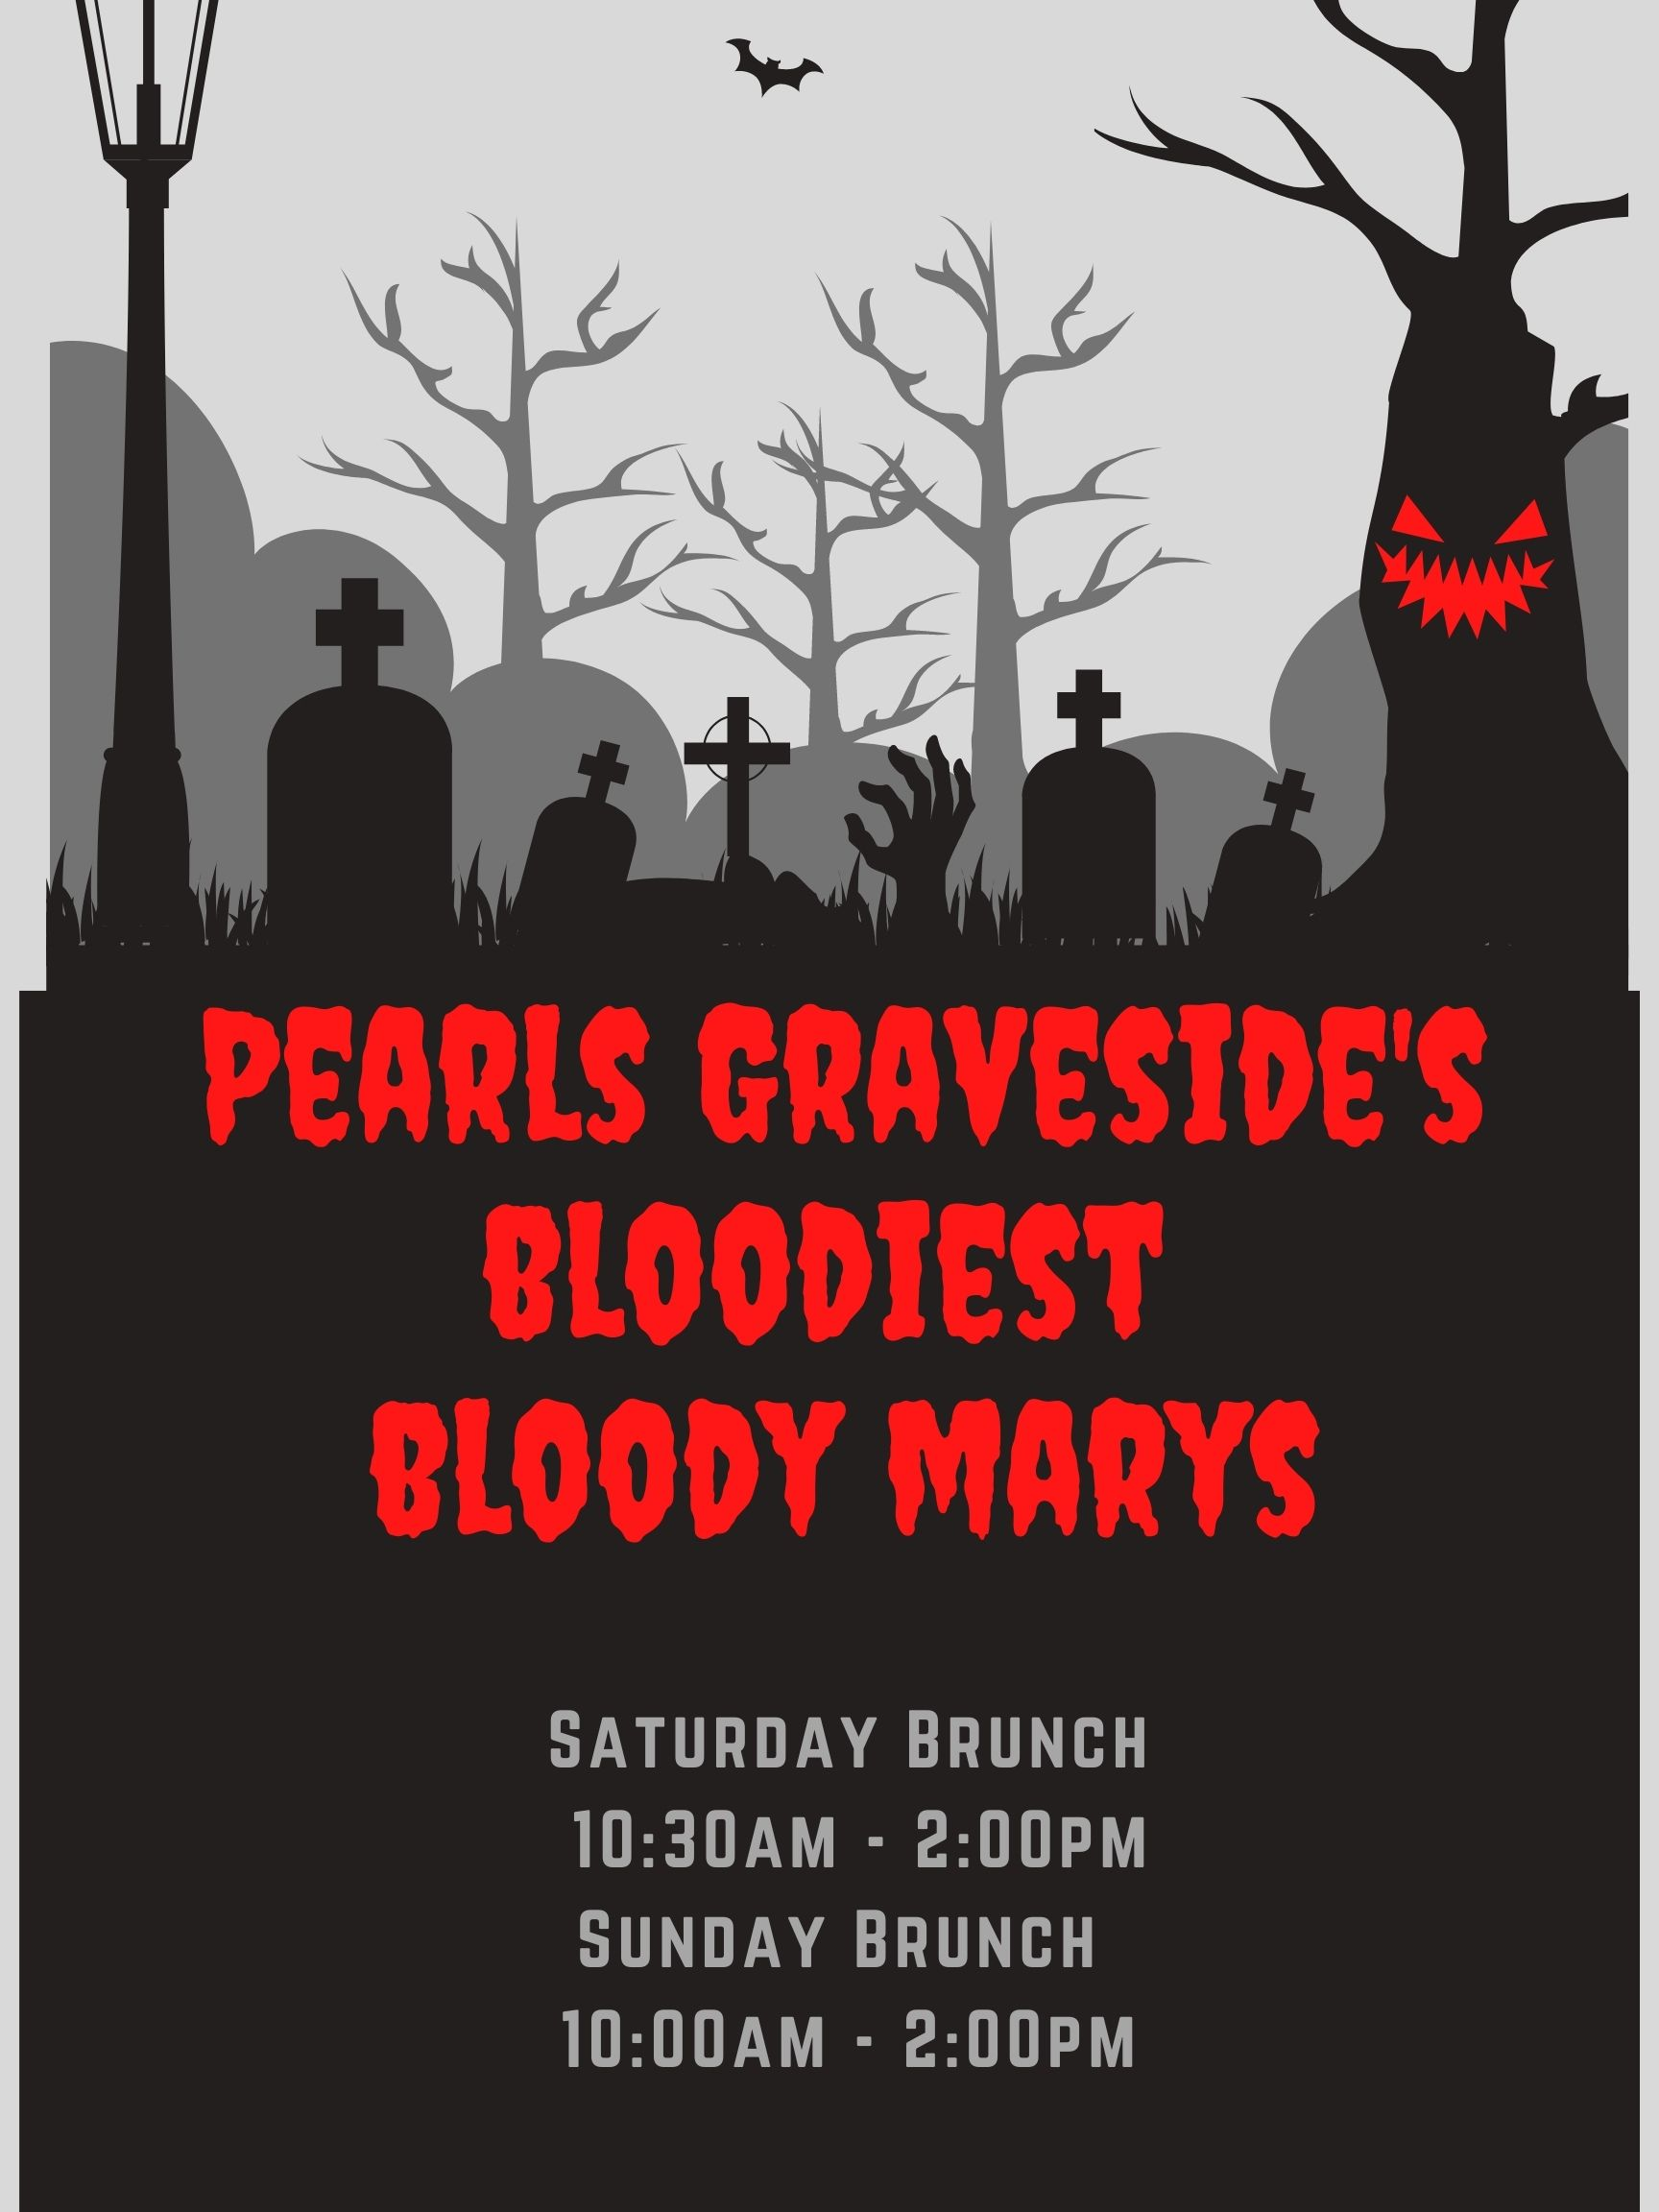 Bloodiest Bloody Mary's in OKC!